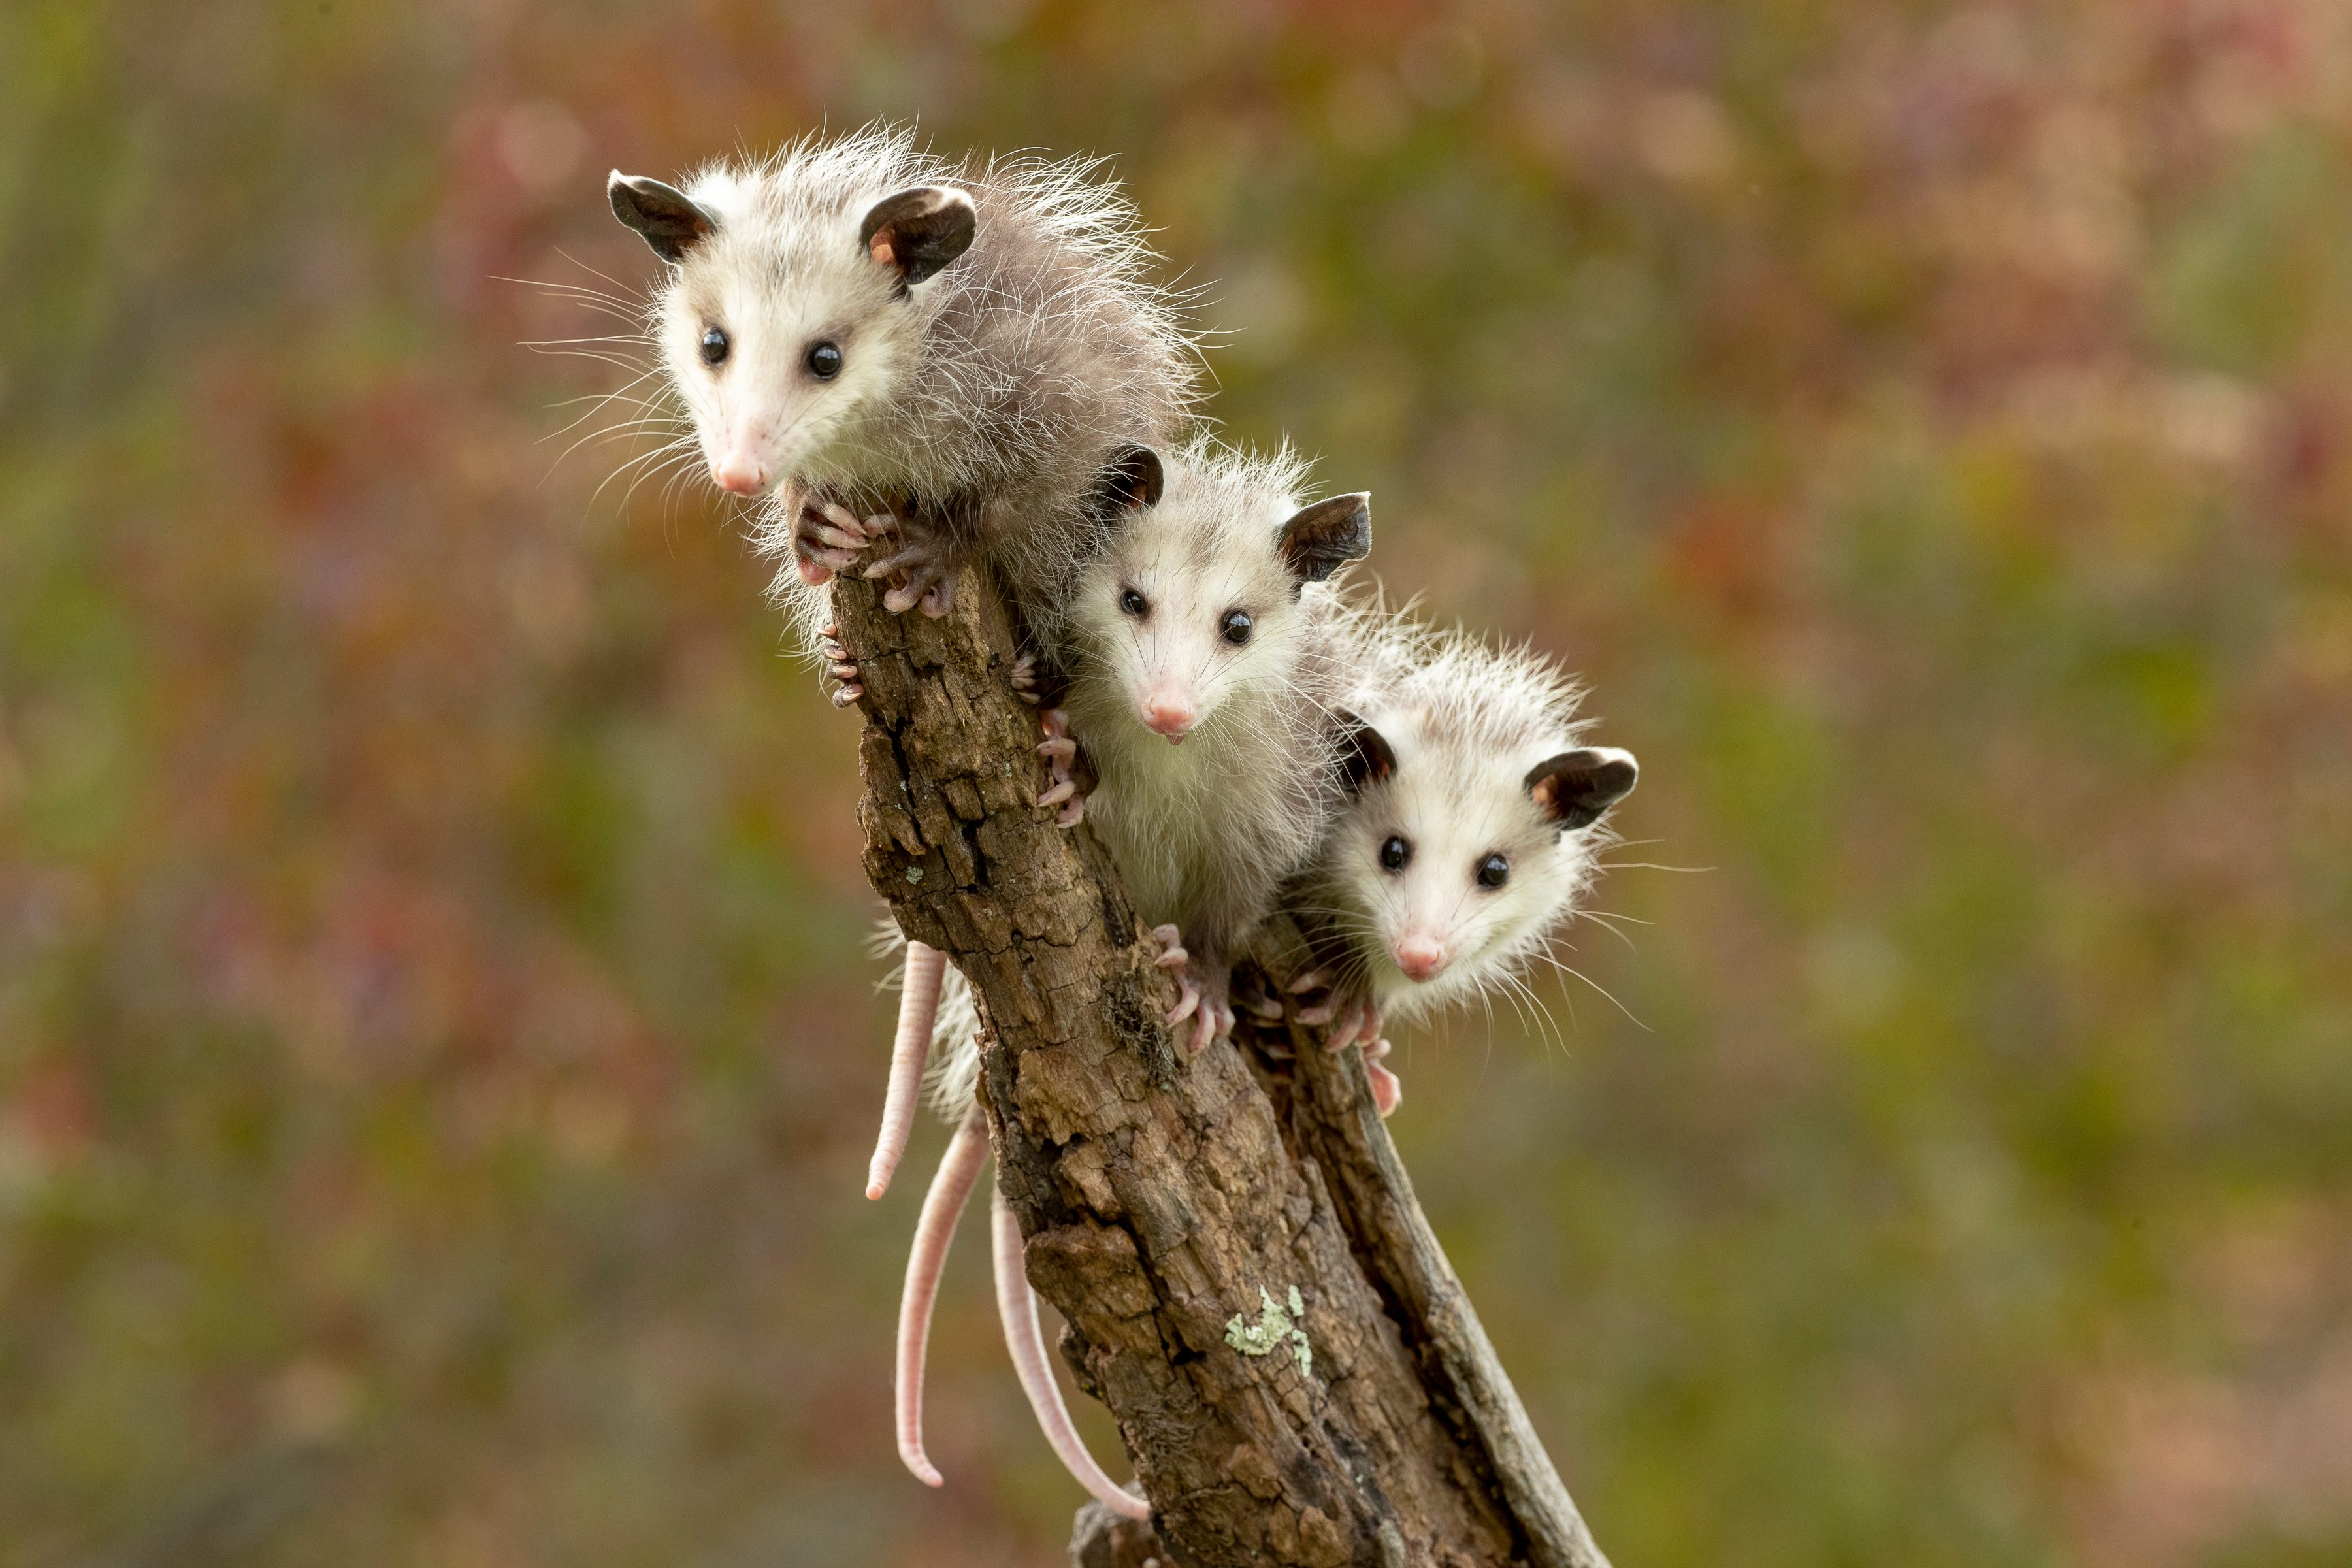 Virginia Opossum babies on stick hanging out